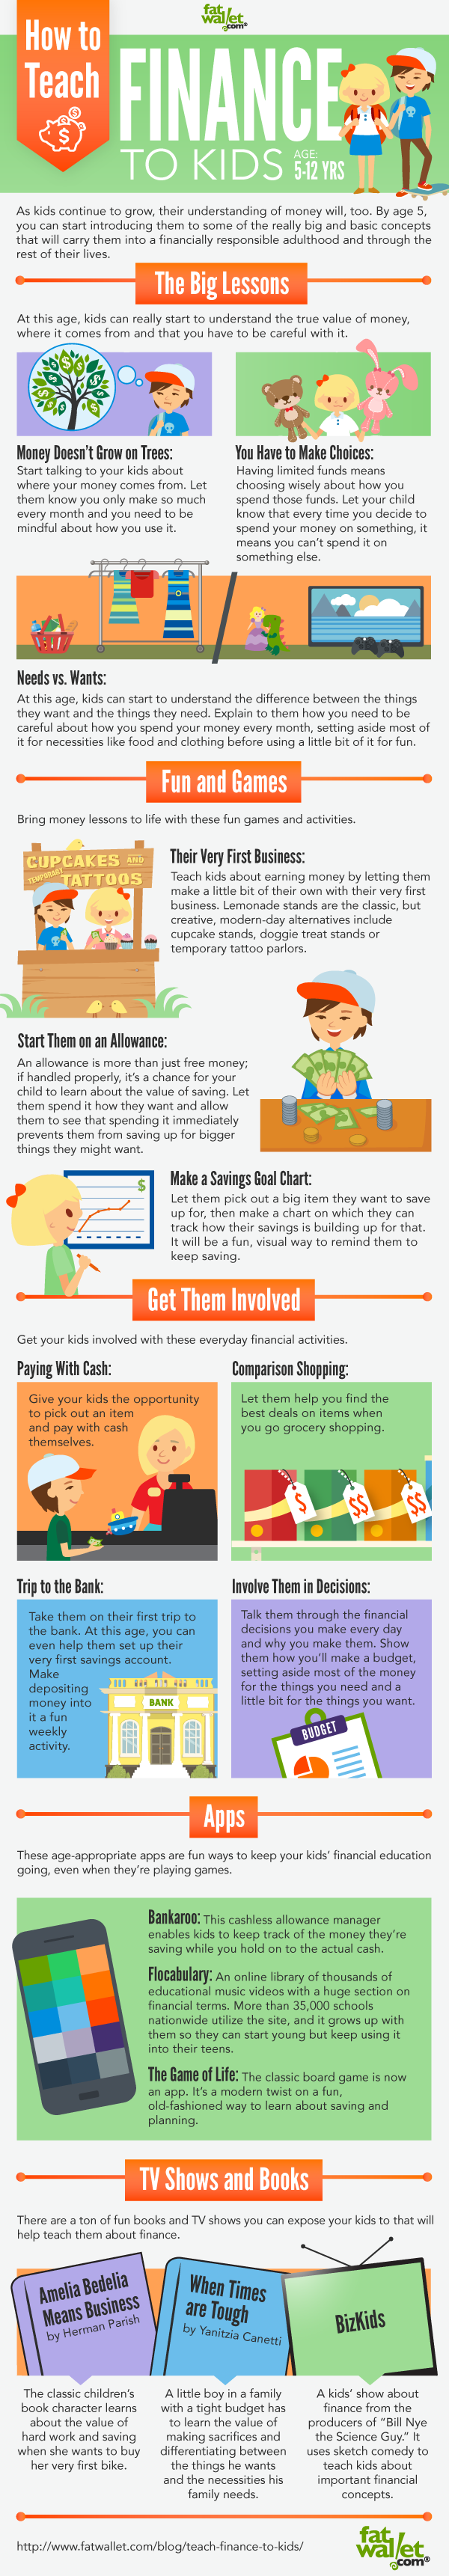 How to Teach Finance to Kids Ages 5-12